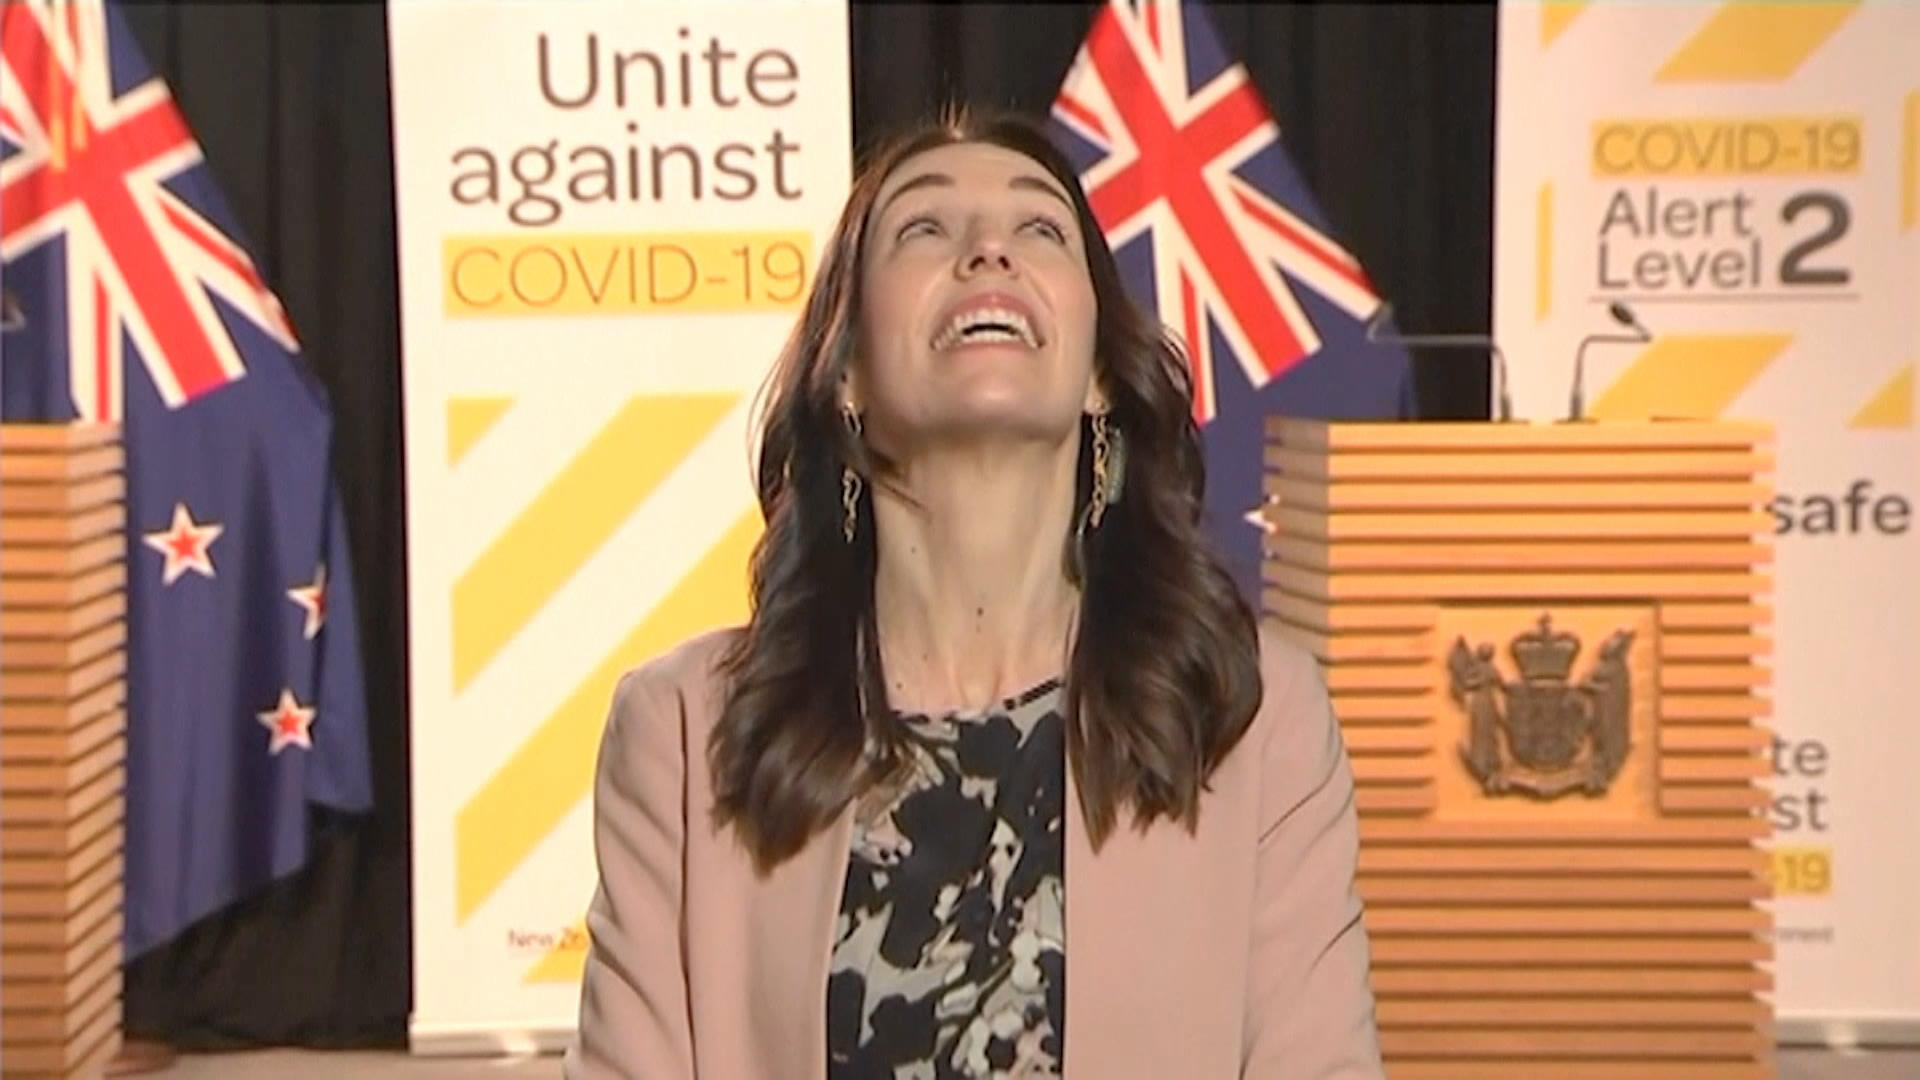 NZ PM Appears Unfazed During 5.8 Magnitude Earthquake